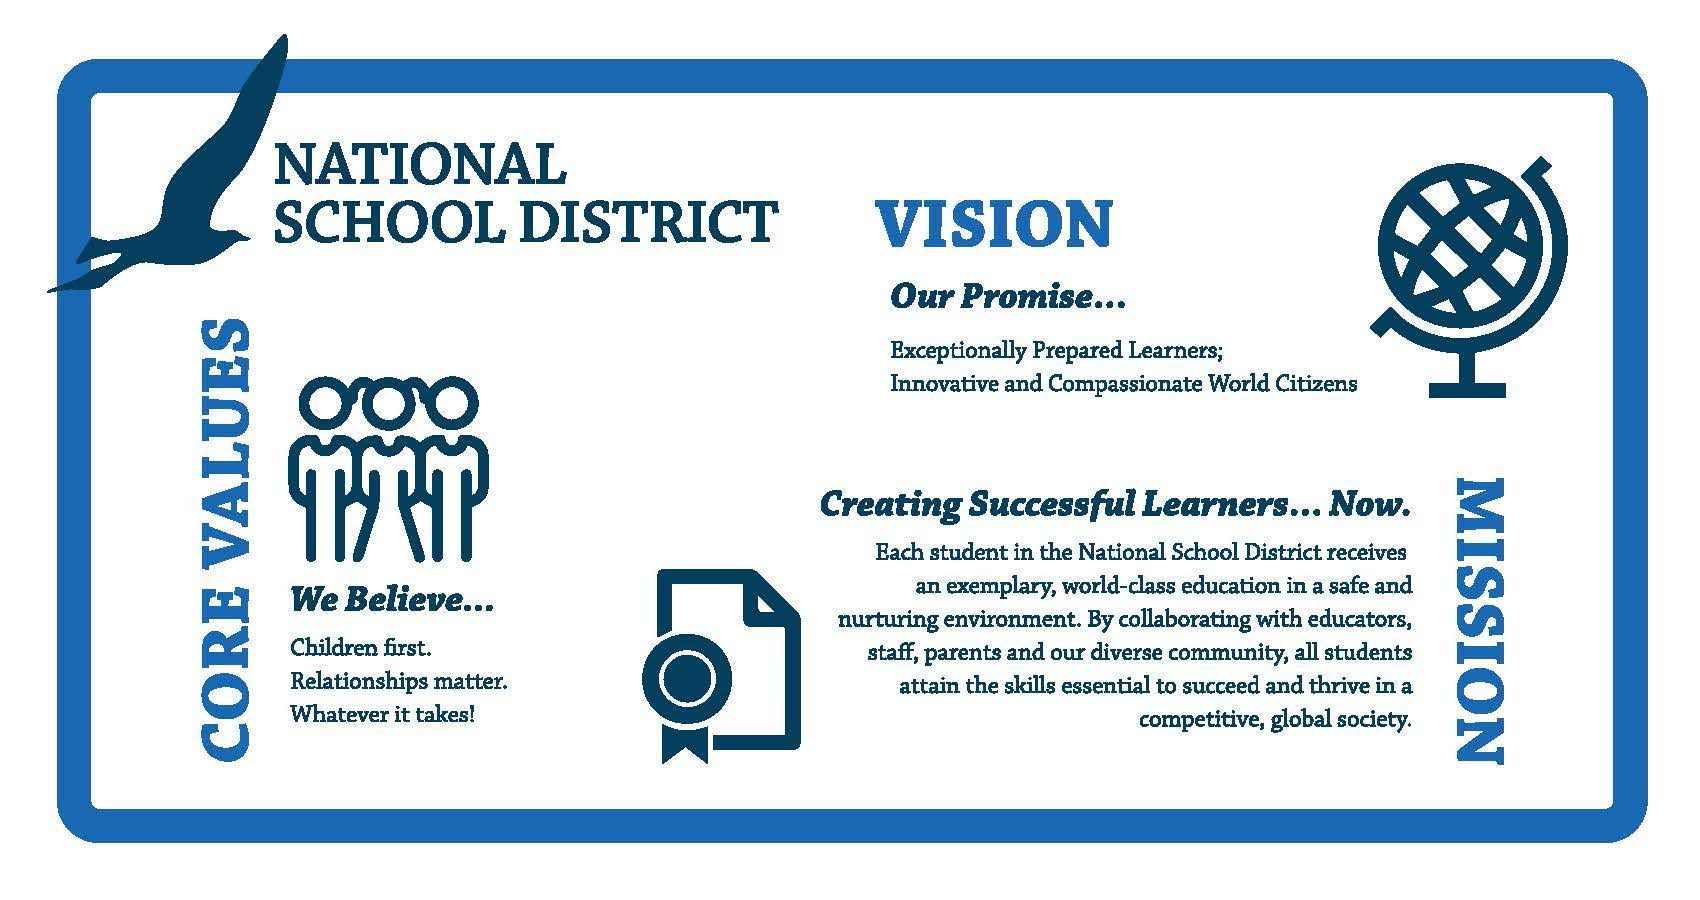 National School District Core Values, Mission and Vision